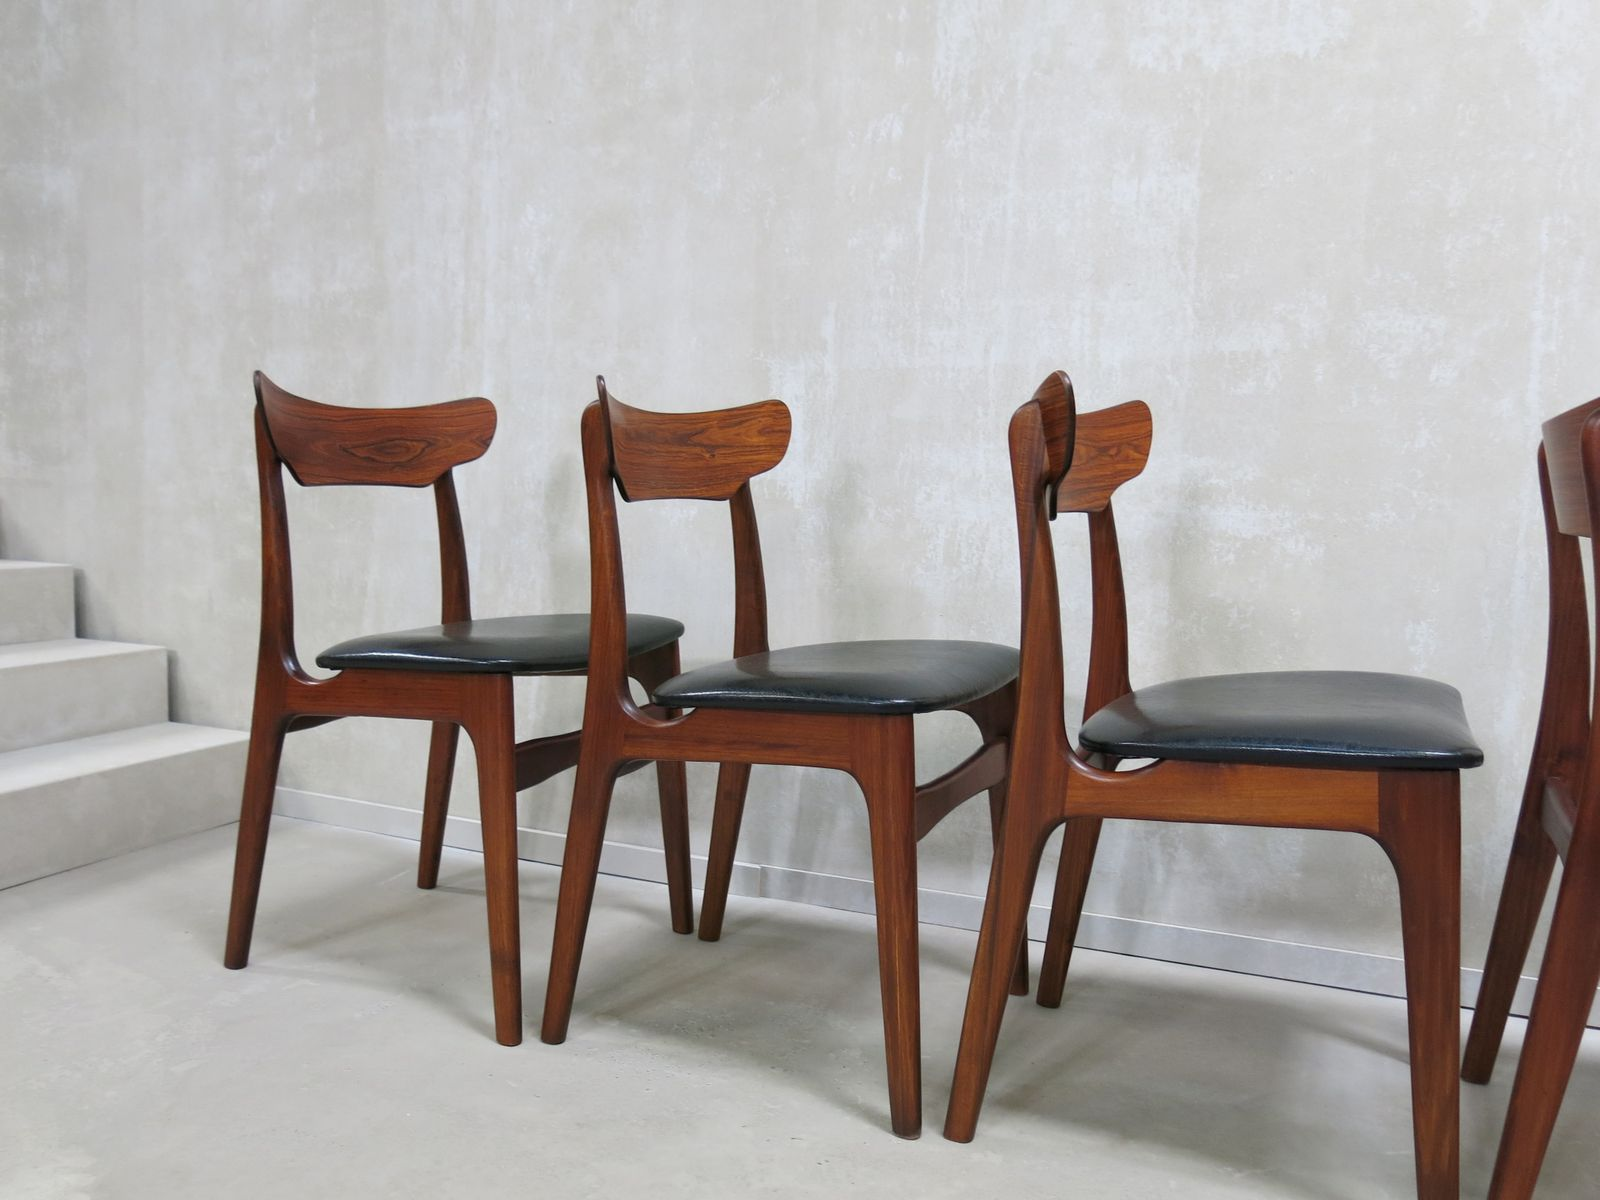 Rosewood Amp Teak Dining Chairs By Schionning Amp Elgaard